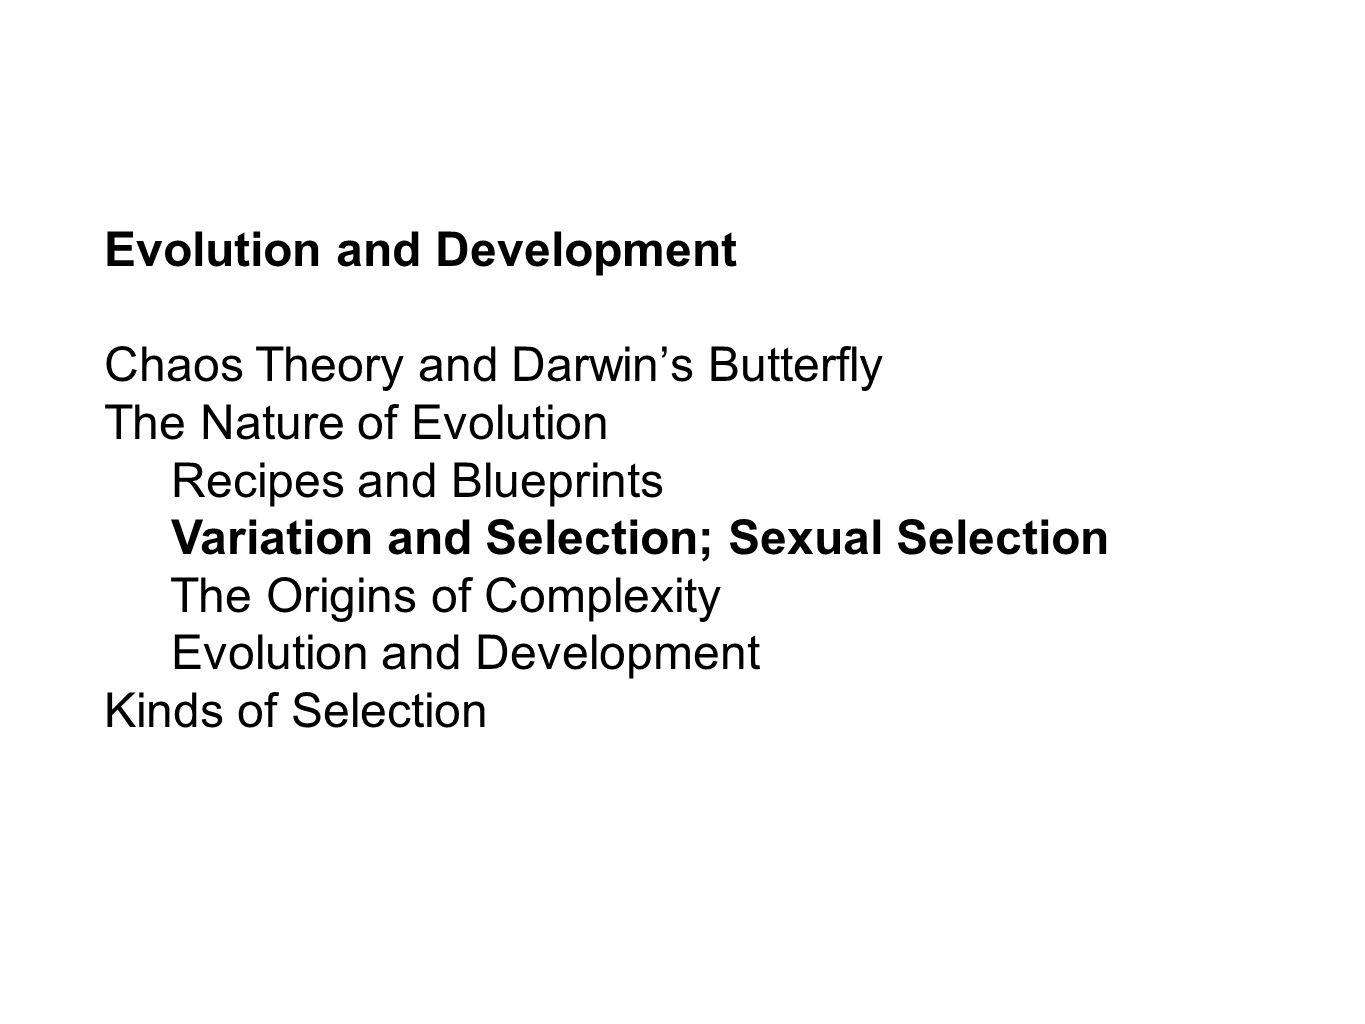 Evolution and Development Chaos Theory and Darwins Butterfly The Nature of Evolution Recipes and Blueprints Variation and Selection; Sexual Selection The Origins of Complexity Evolution and Development Kinds of Selection